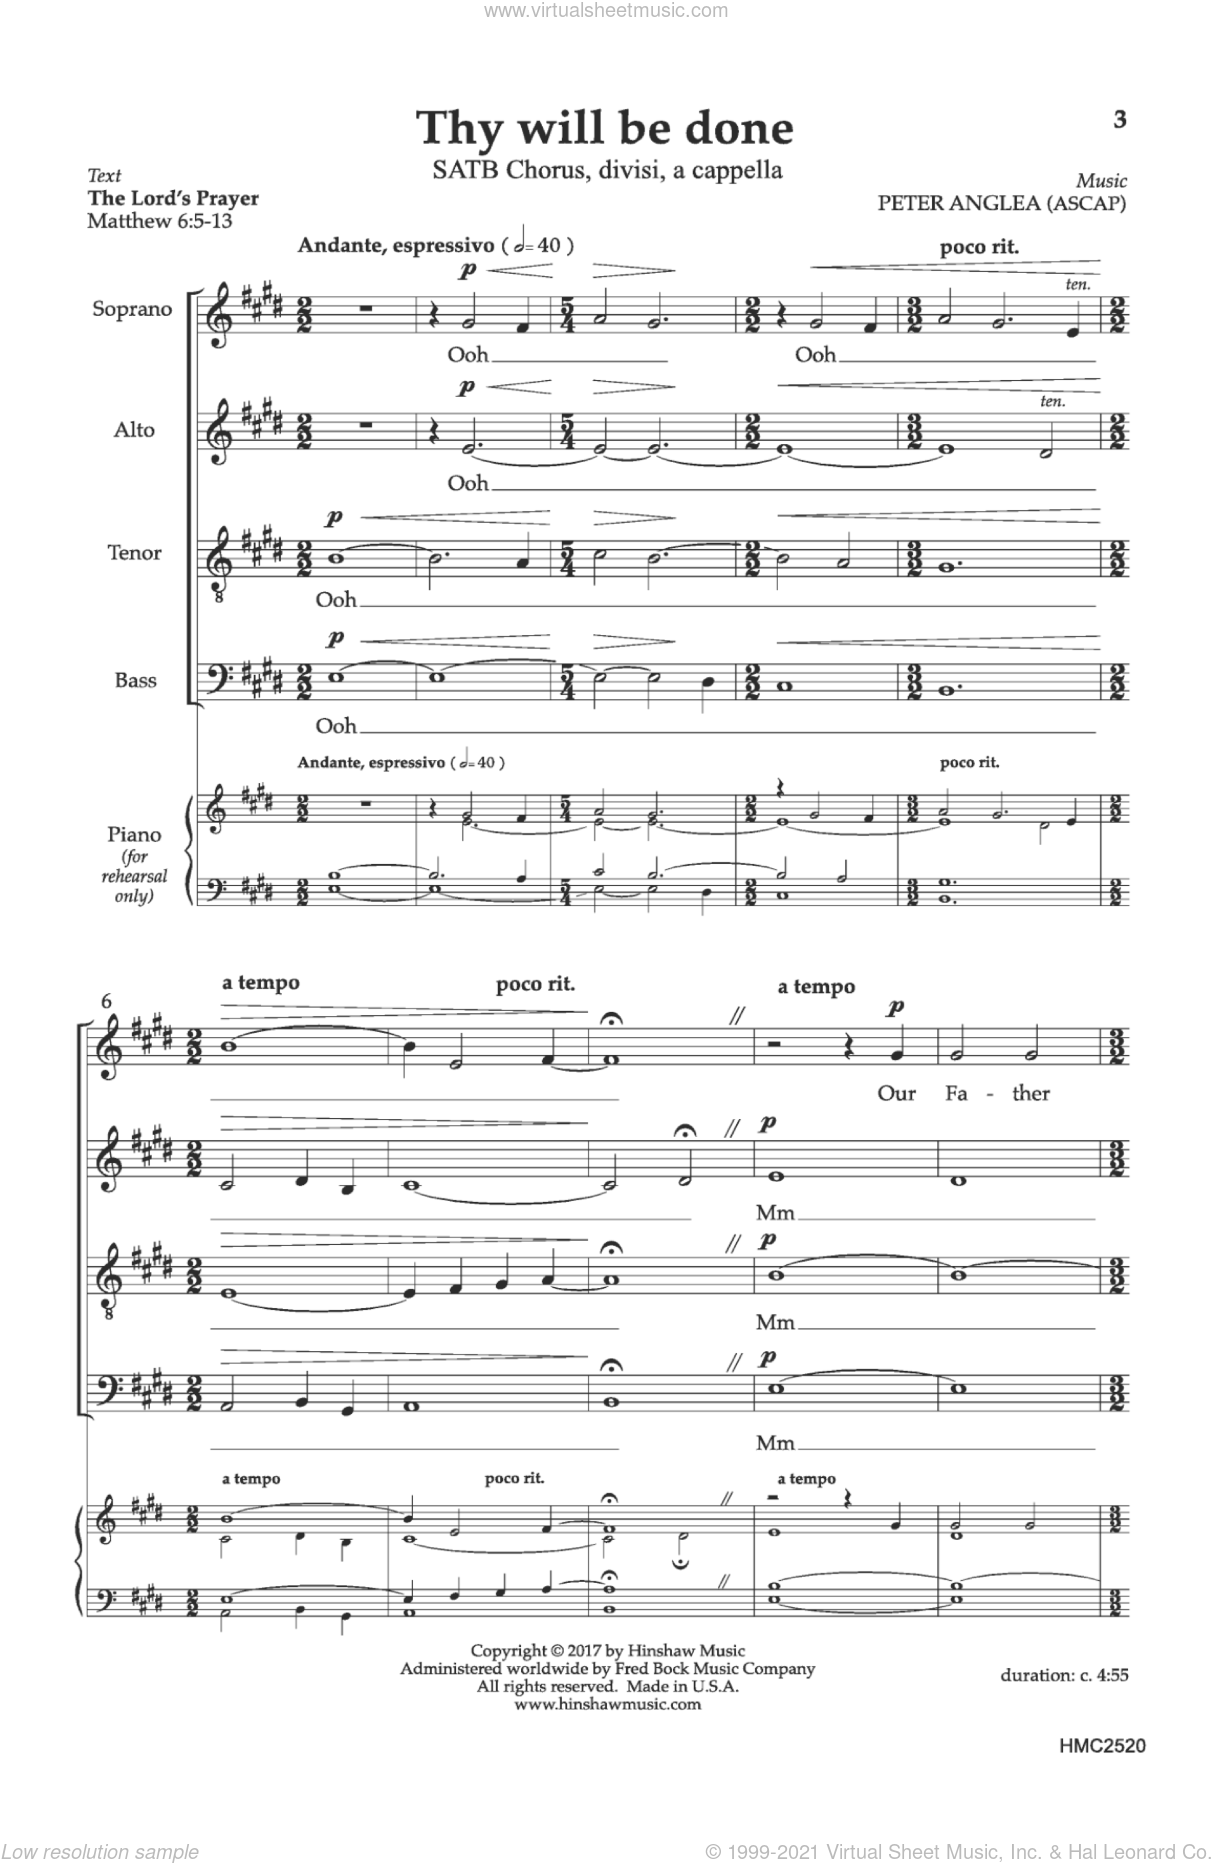 Thy Will Be Done sheet music for choir by Peter Anglea, intermediate skill level